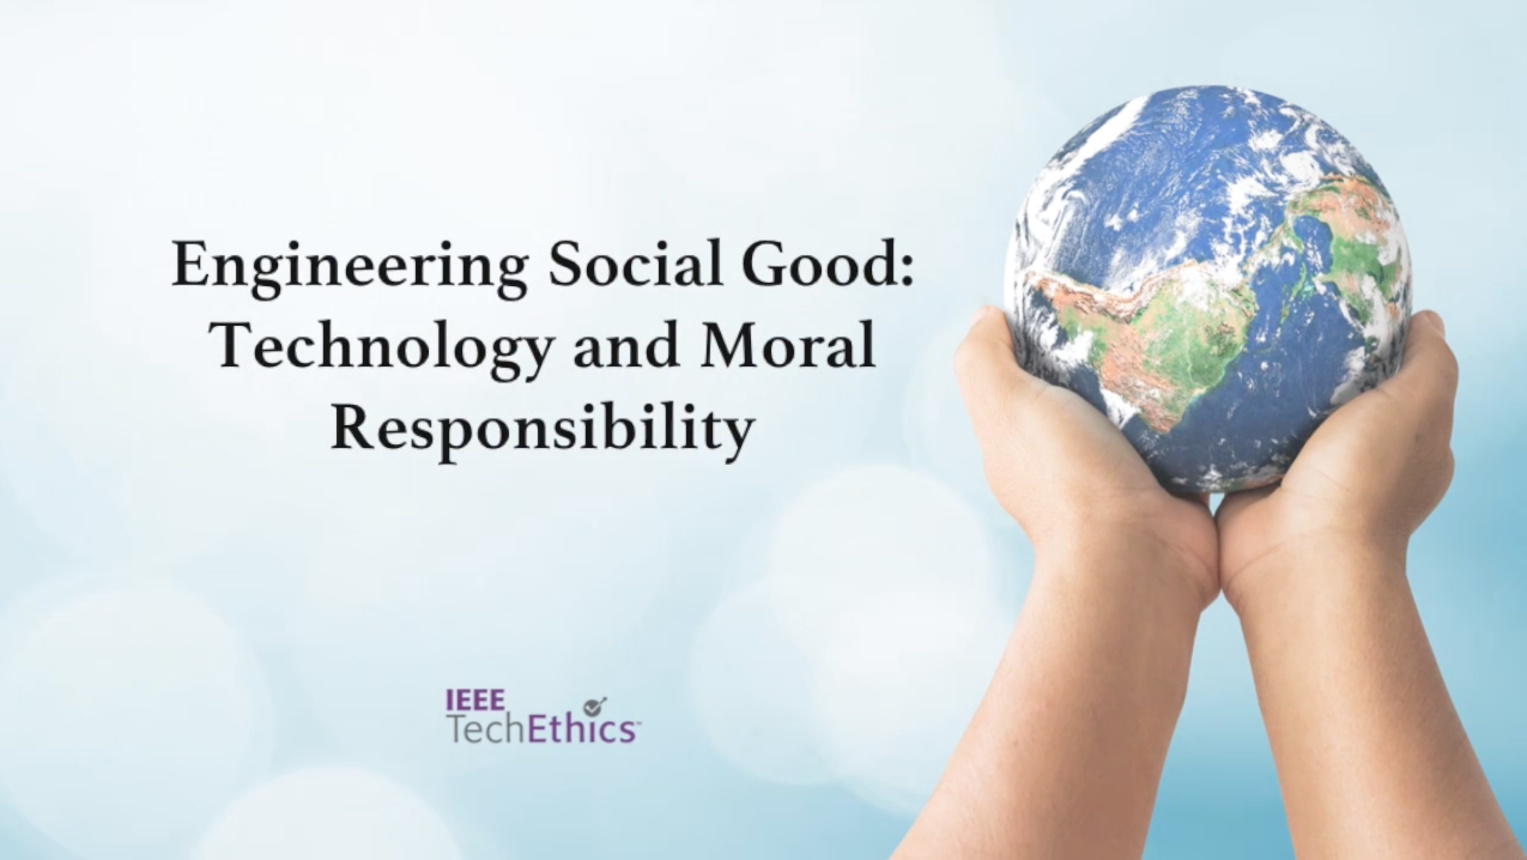 Engineering Social Good: Technology and Moral Responsibility | IEEE TechEthics Virtual Panel